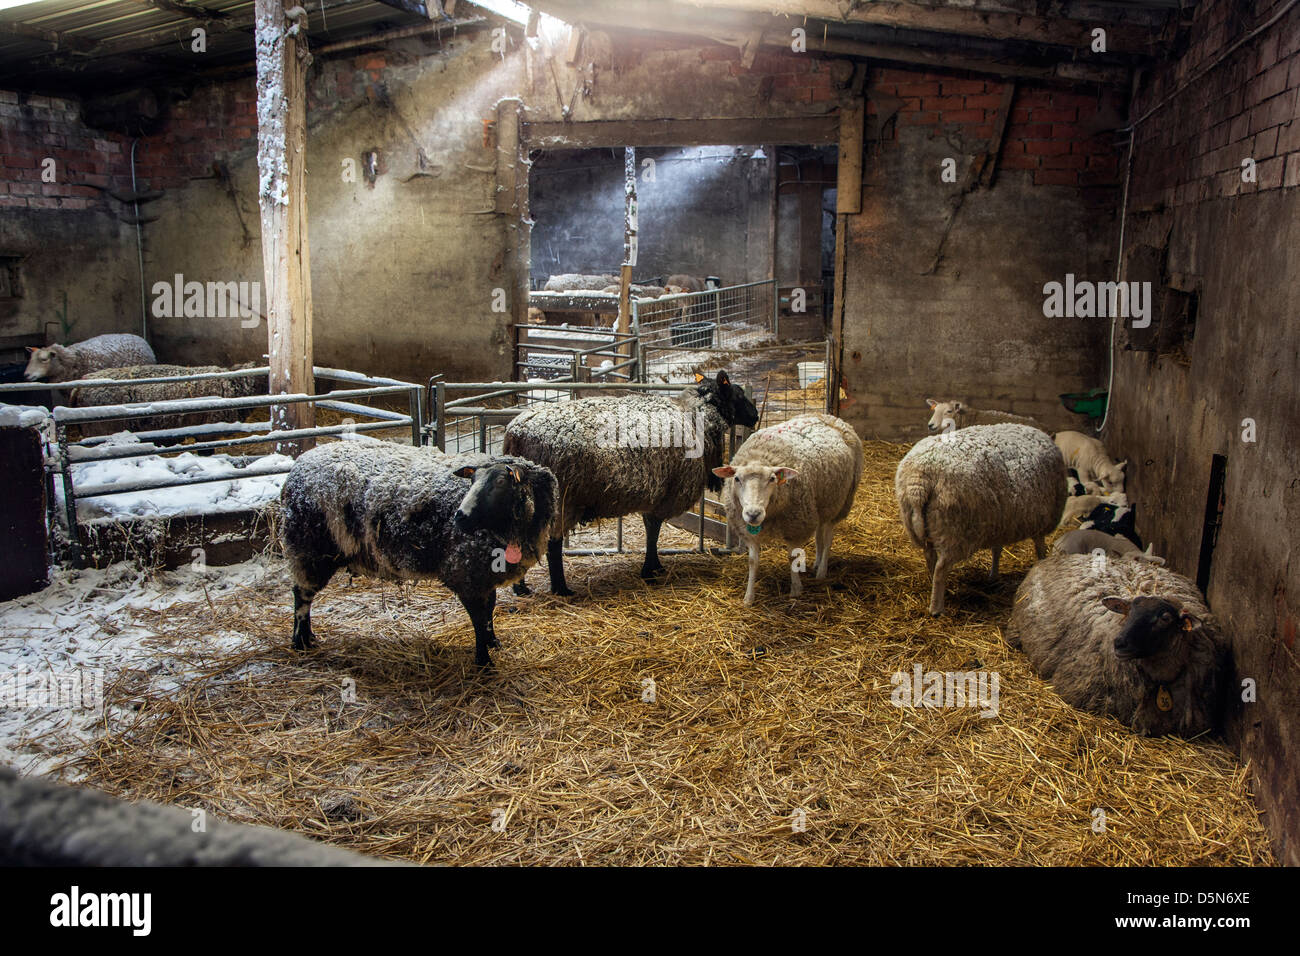 Clipart Bauen Domestic Sheep, Ewes And Lambs In Barn / Sheepfold At Farm